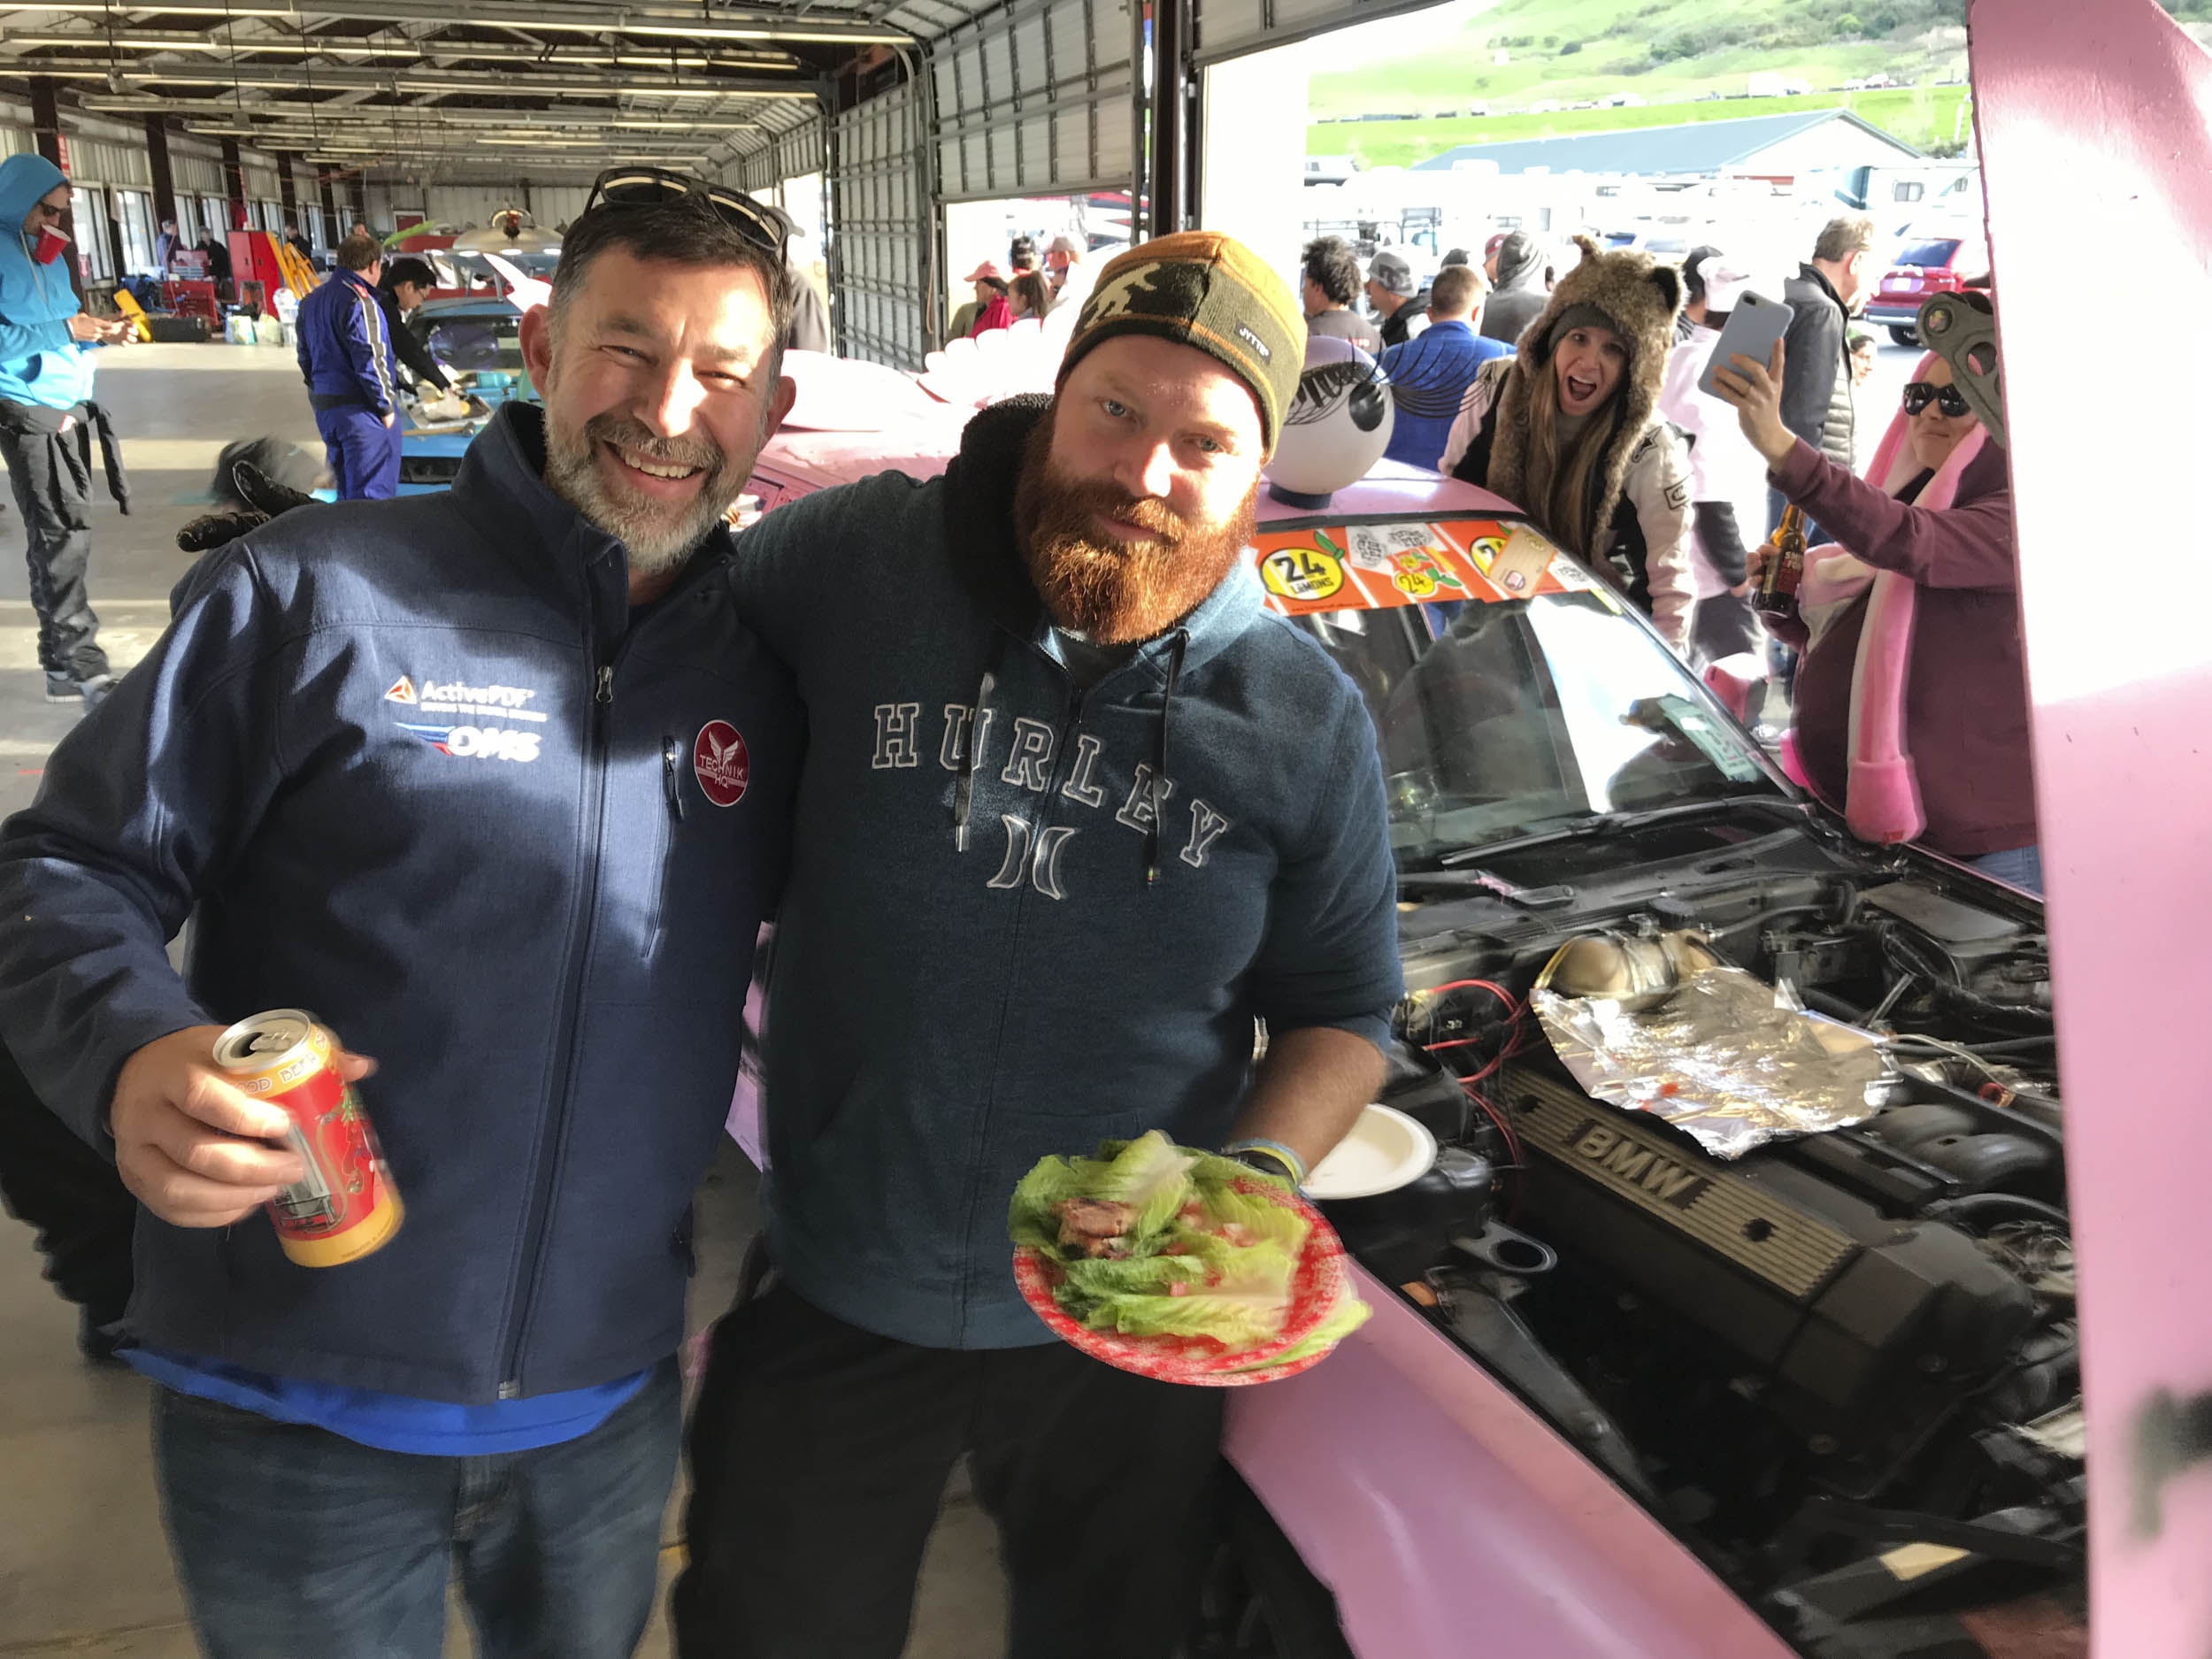 event goers at the LeMons Underhood Cook Off